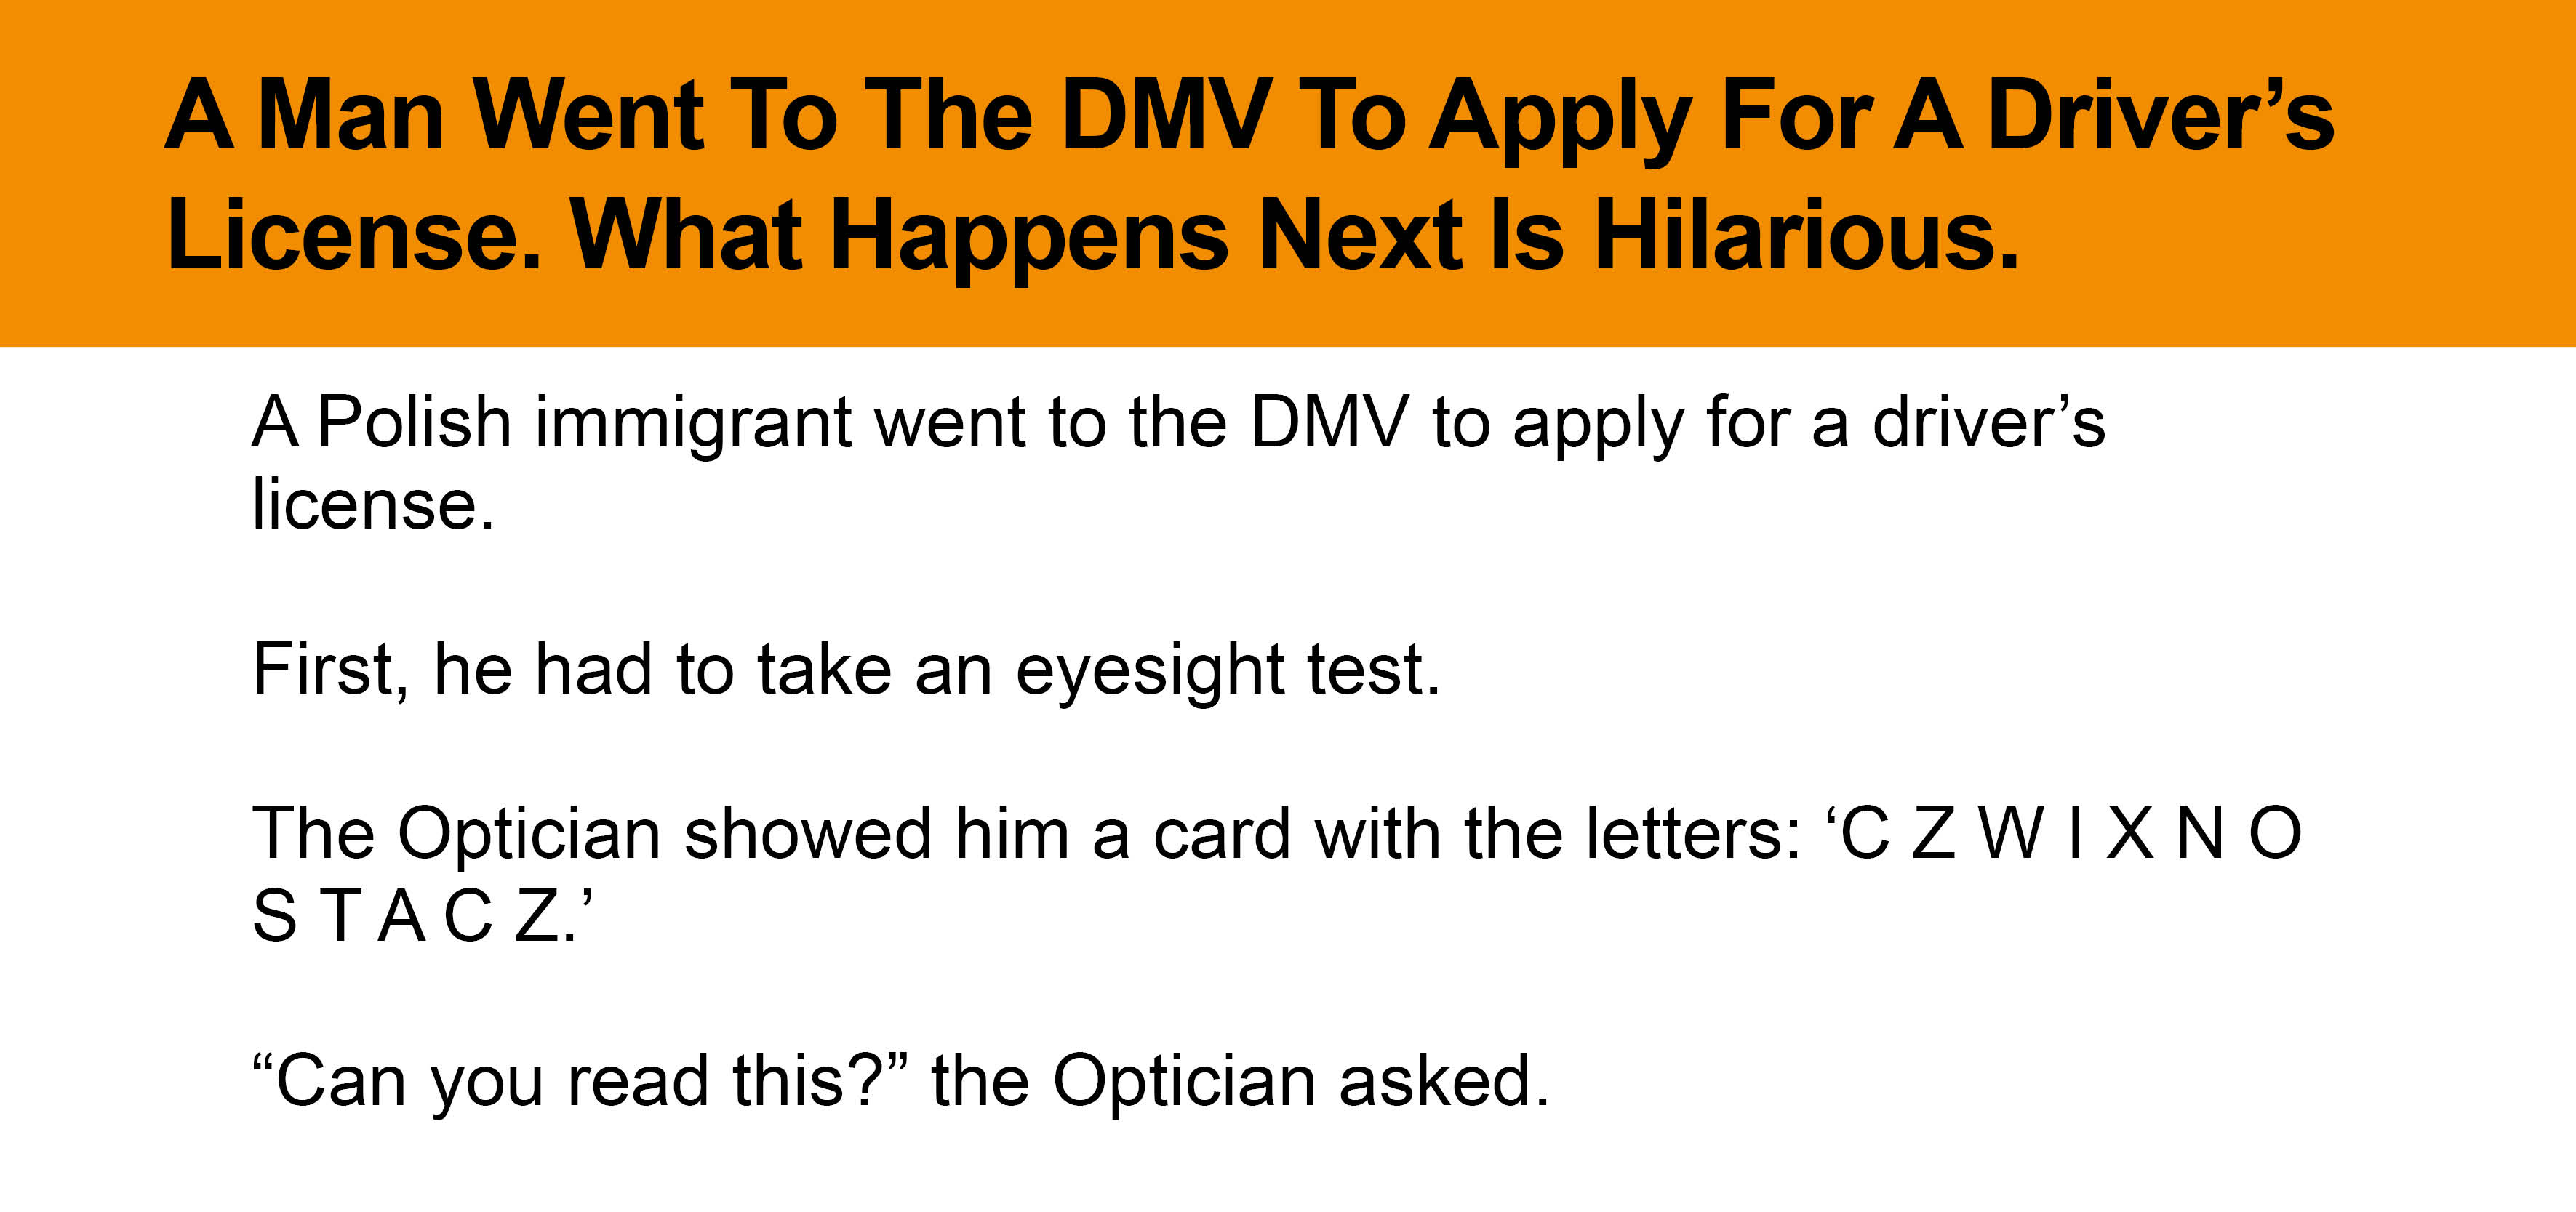 A Man Went To The DMV To Apply For A Driver's License  -